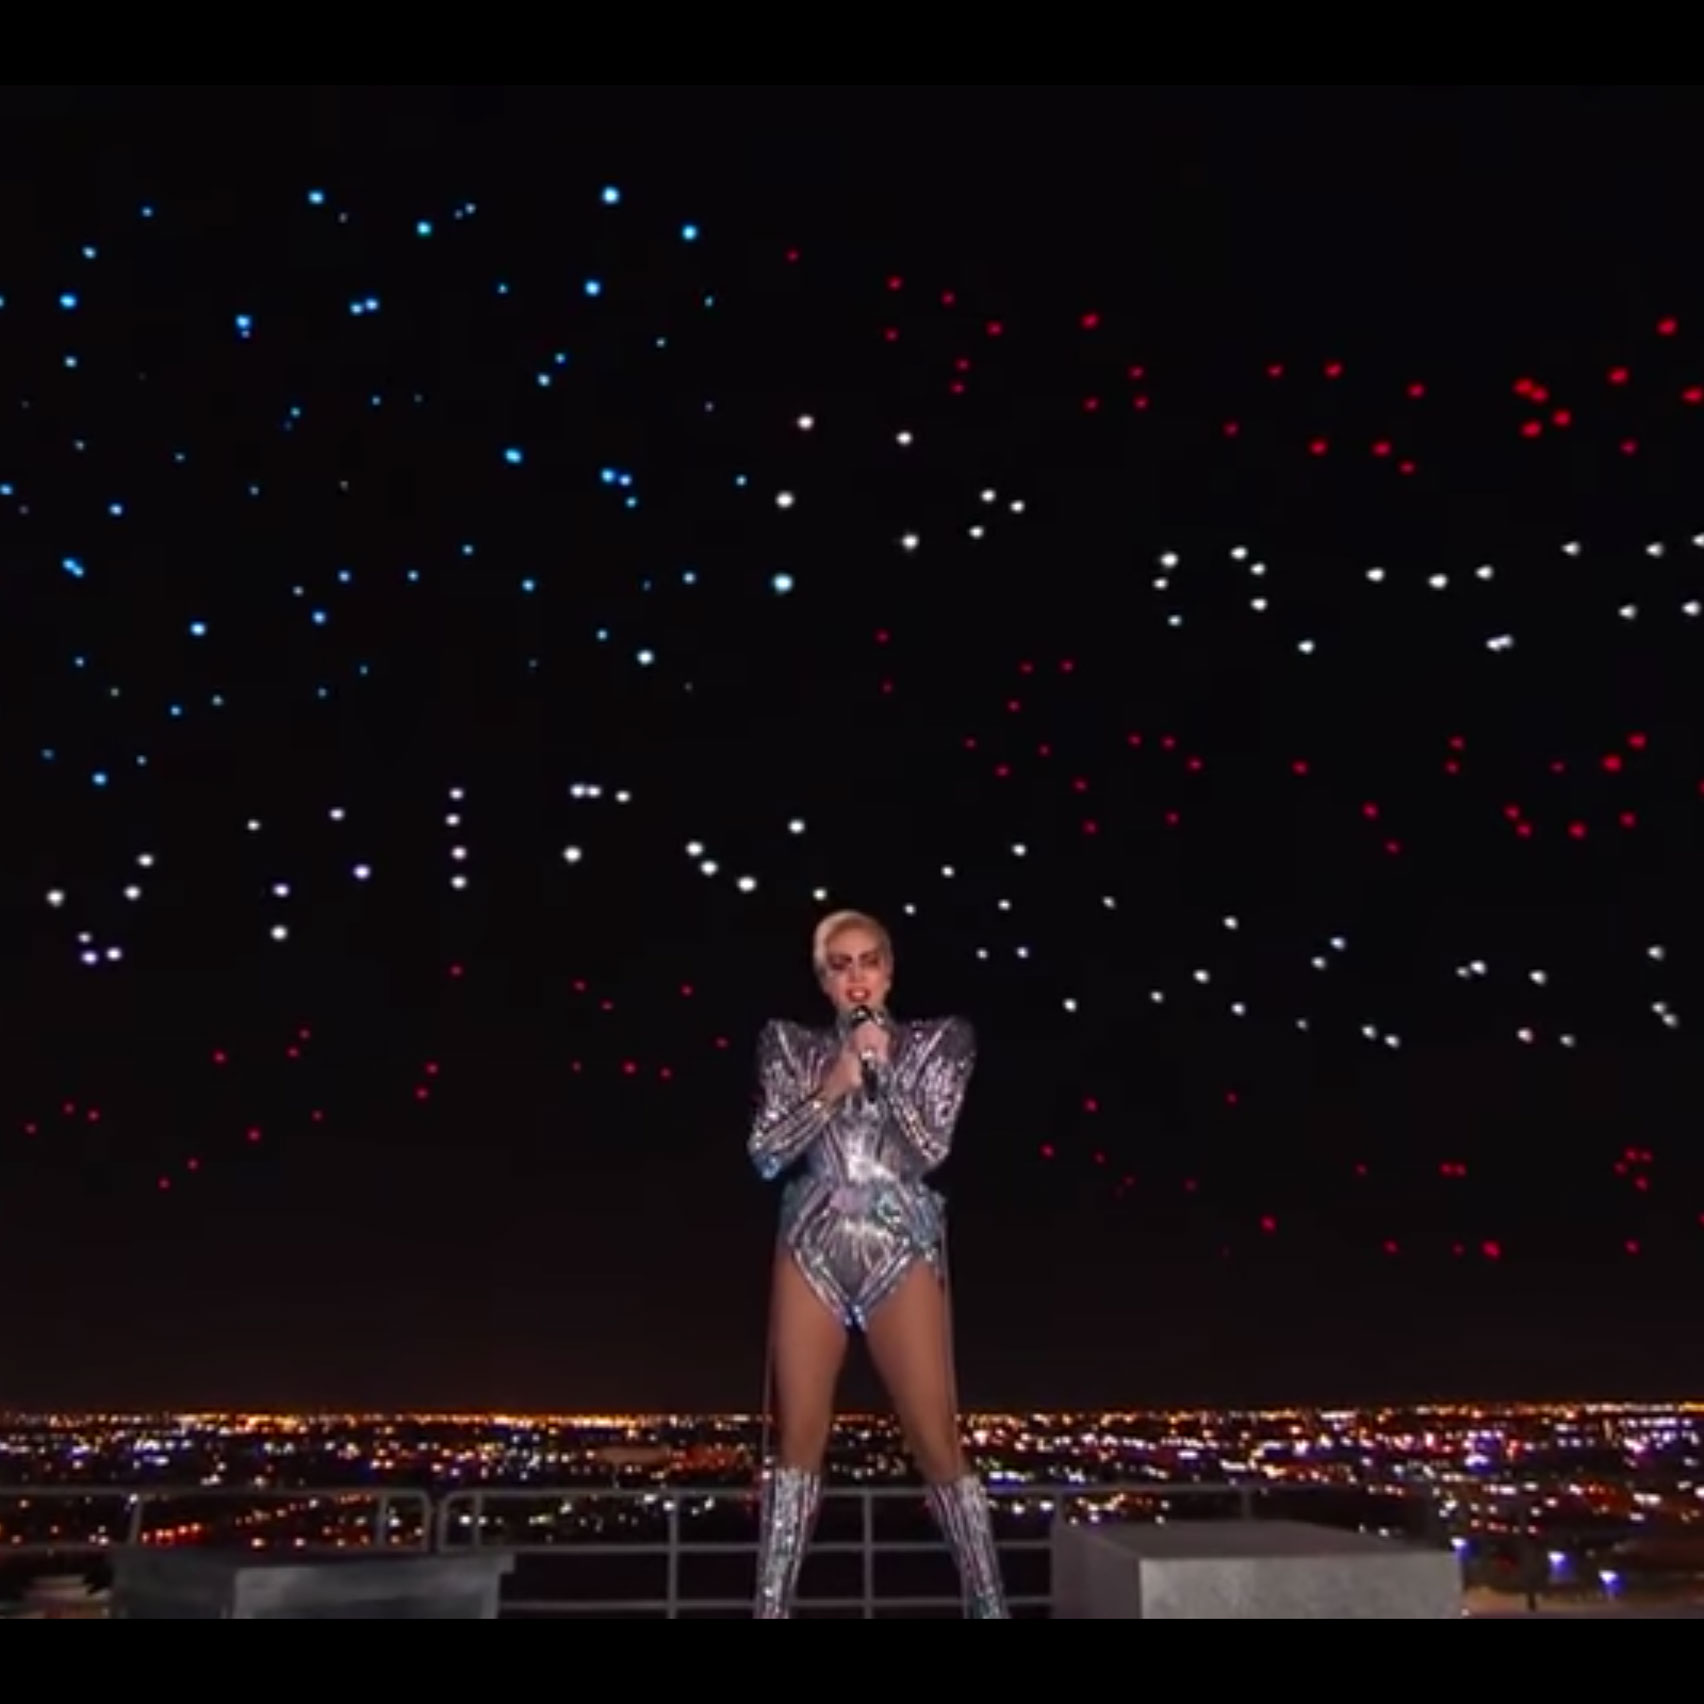 Lady Gaga's Super Bowl performance accompanied by 300 drones